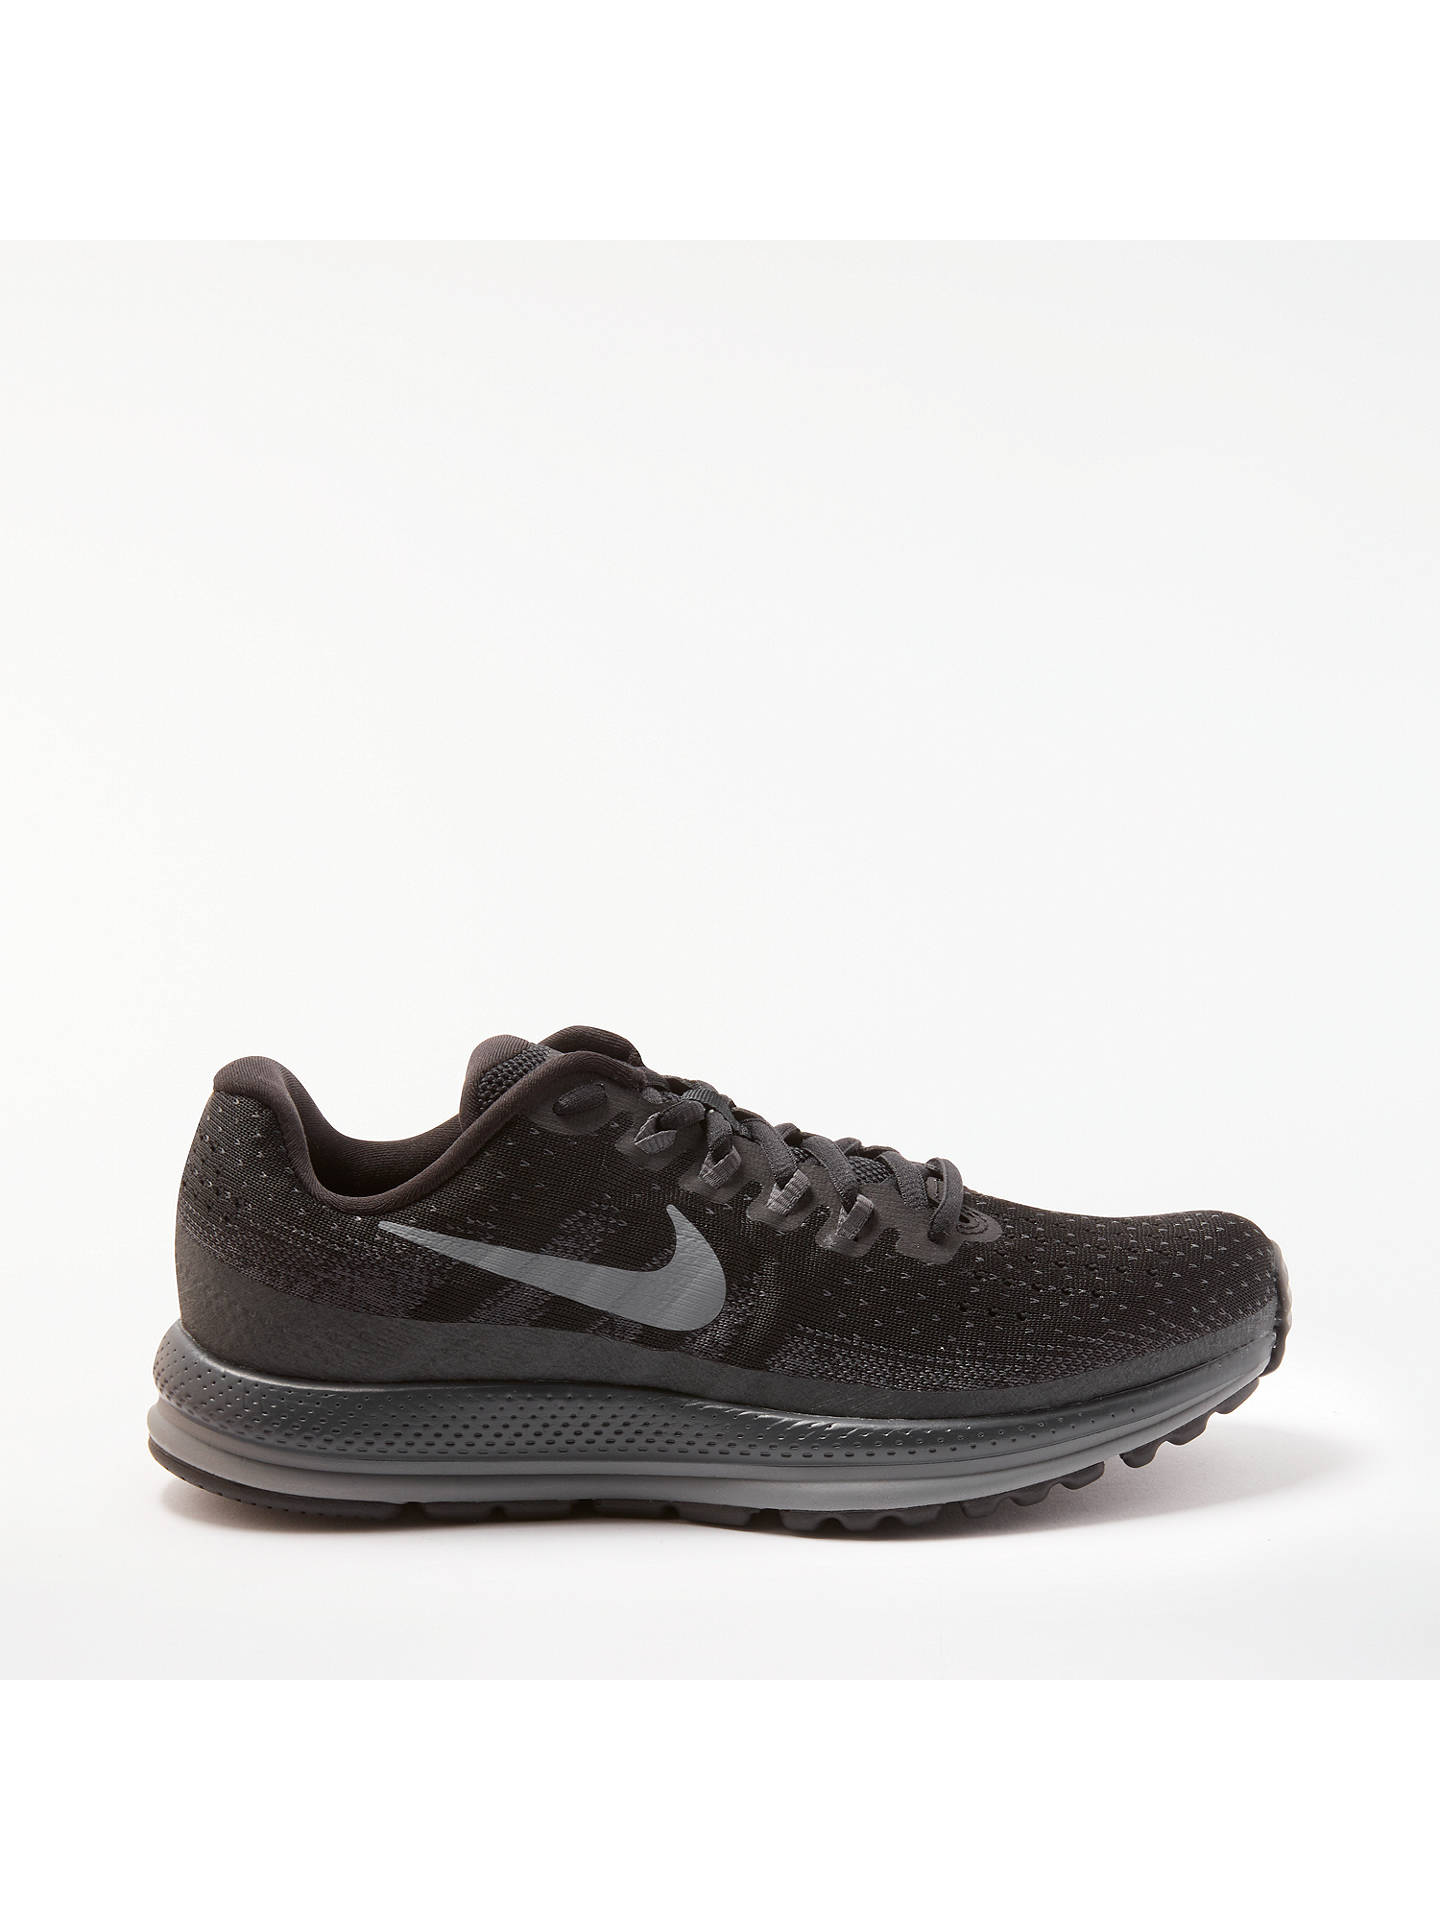 newest collection e7b12 79789 Buy Nike Air Zoom Vomero 13 Women s Running Shoes, Black, 4 Online at  johnlewis ...